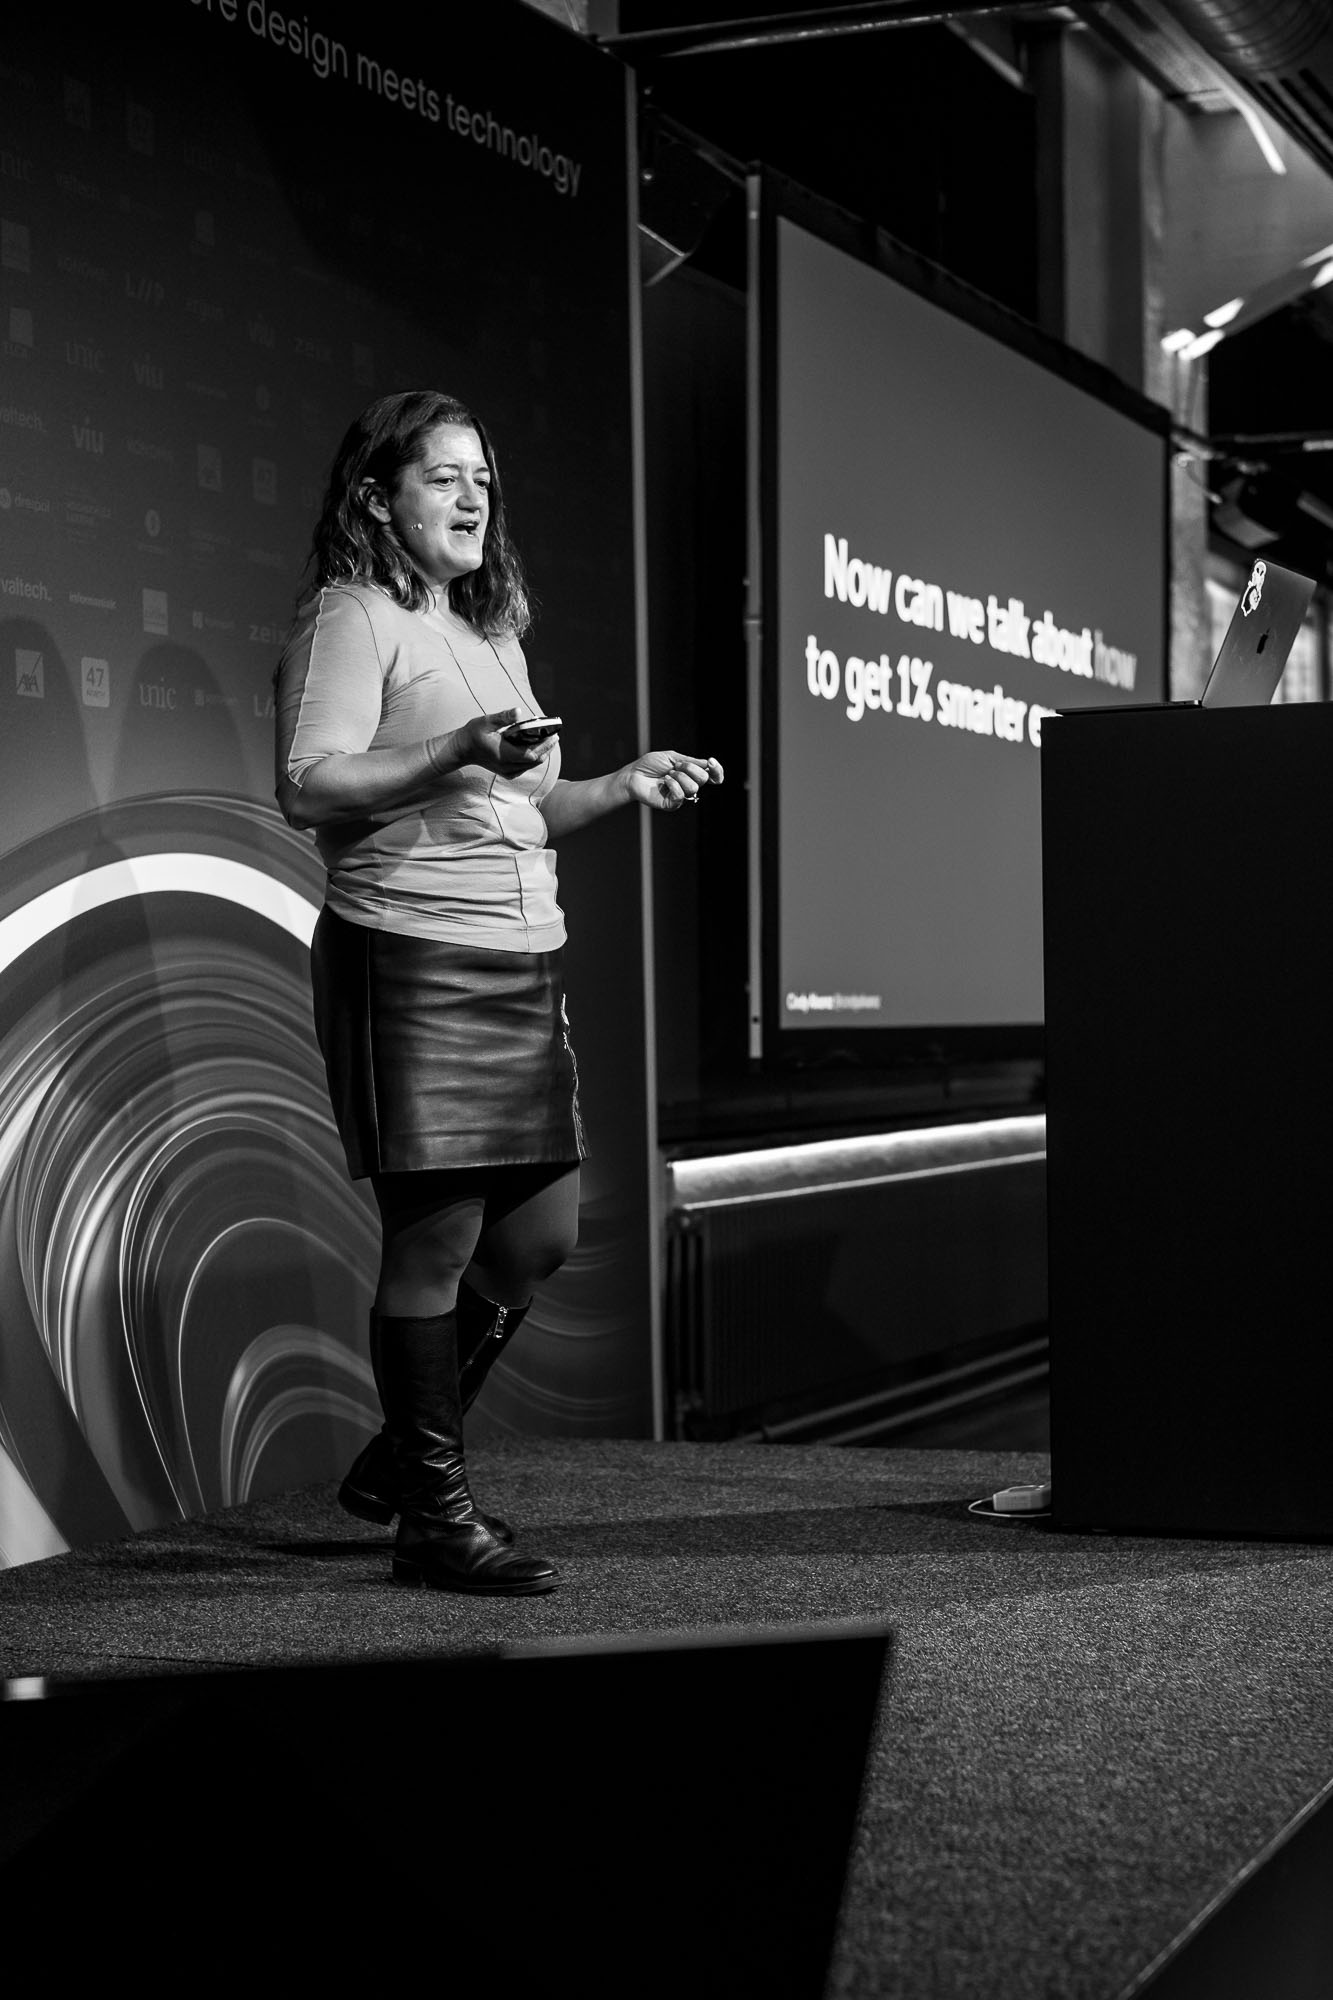 Cindy Alvarez on stage at Front Conference 2021